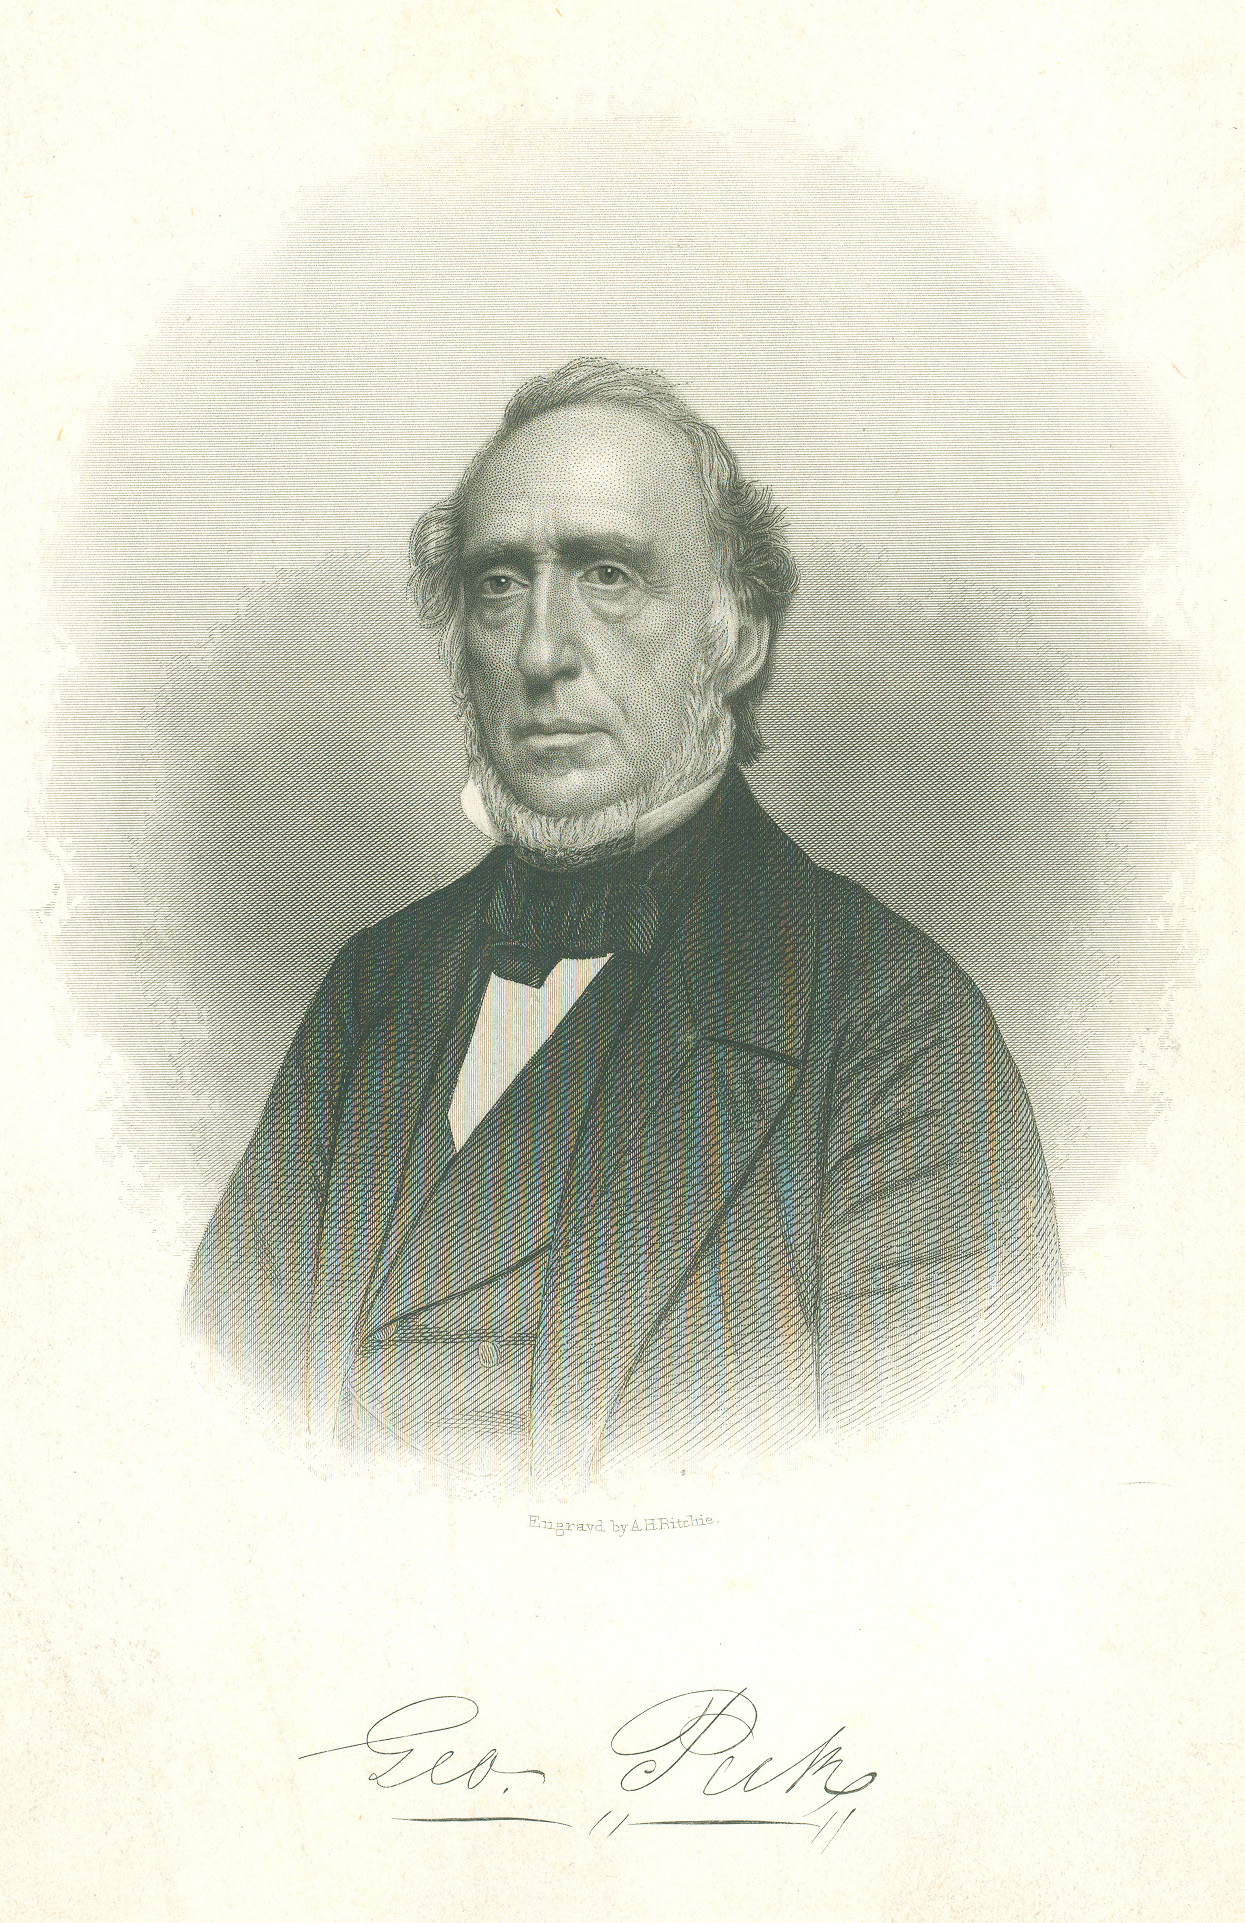 The Rev. George Peck, grandfather of author Stephen Crane, was an important clergyman, editor and author in the Methodist Episcopal Church. Photo courtesy of the United Methodist Commission on Archives and History